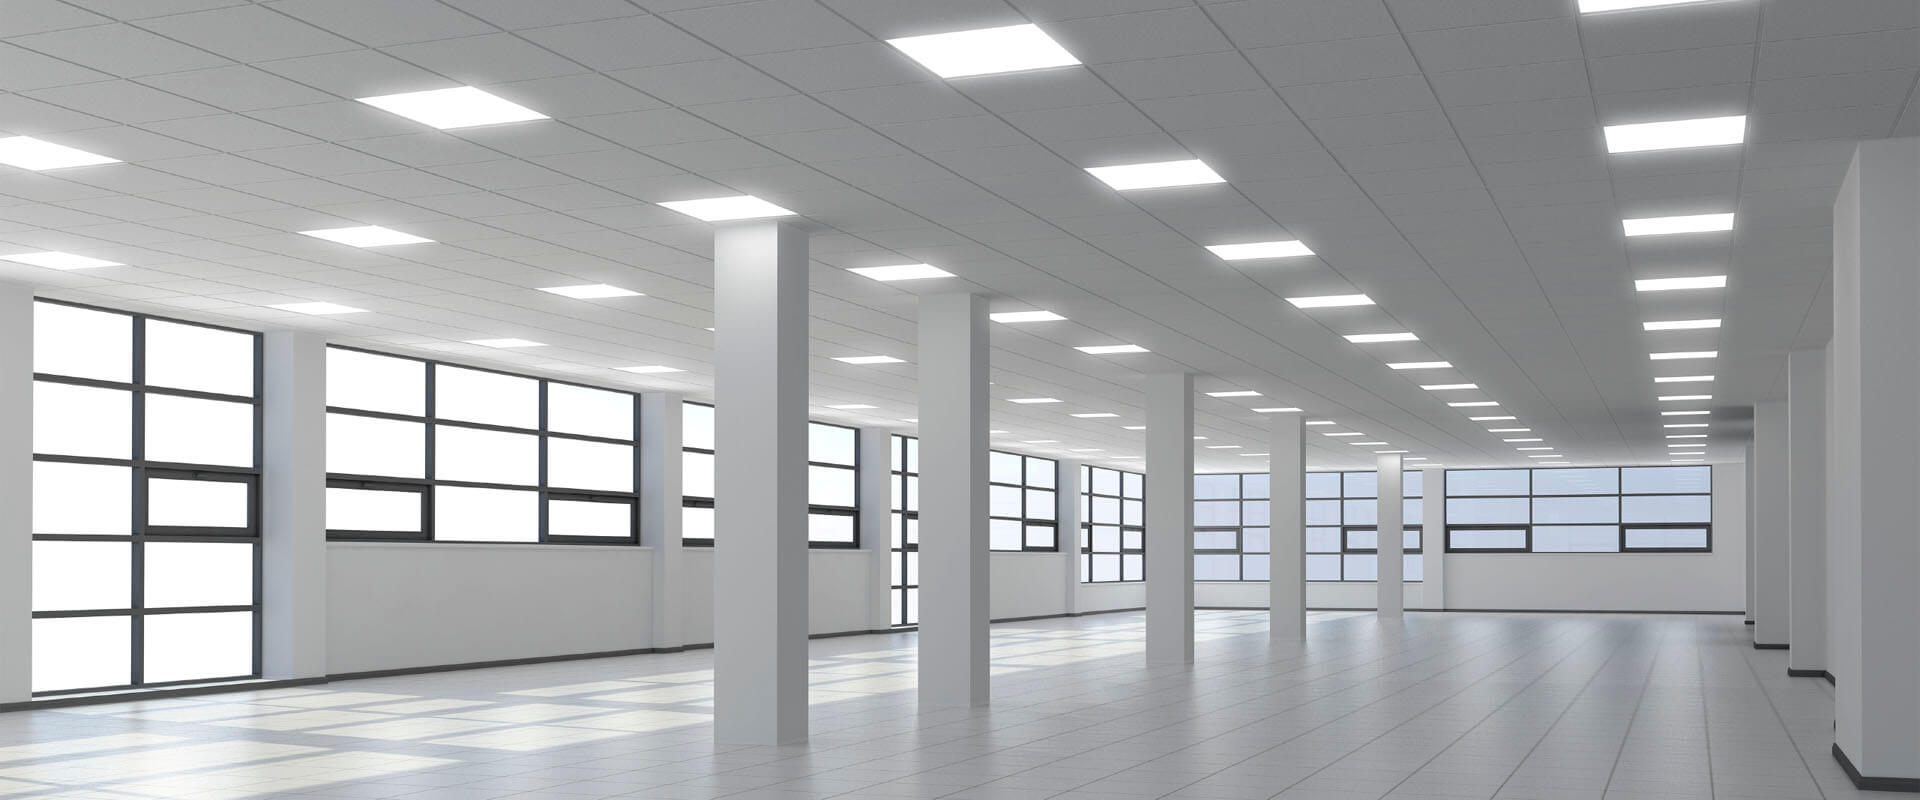 Led lighting systems to review montasir ahmeds blog mozeypictures Image collections